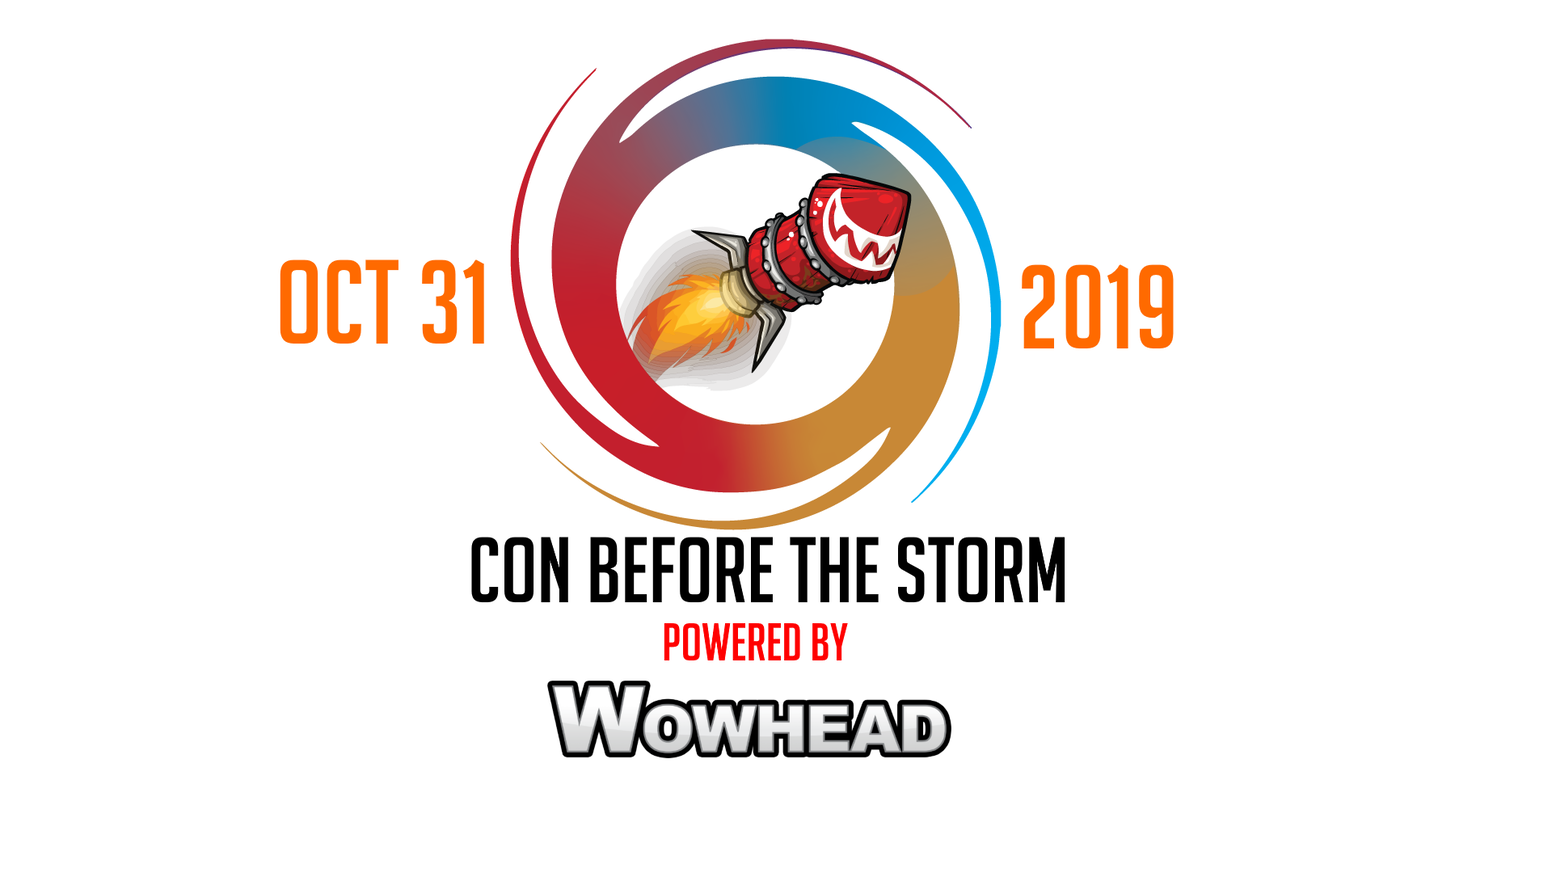 Con Before the Storm 2019 Powered by Wowhead